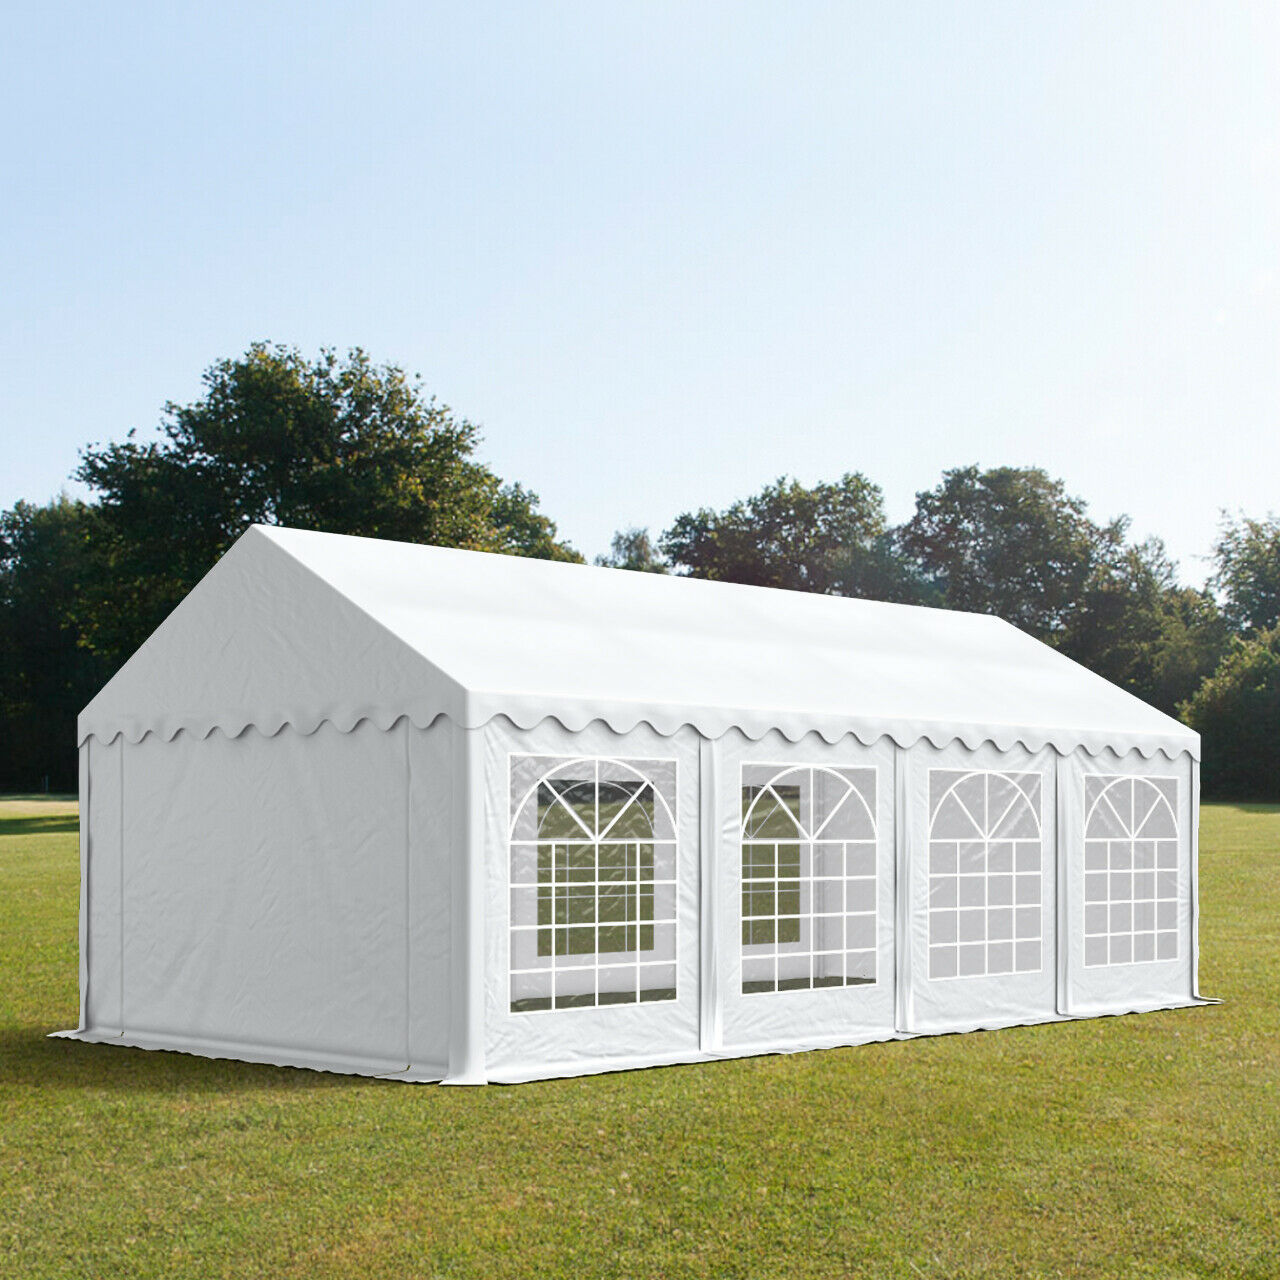 TOOLPORT 6110 4x8 m Marquee Party Tent White